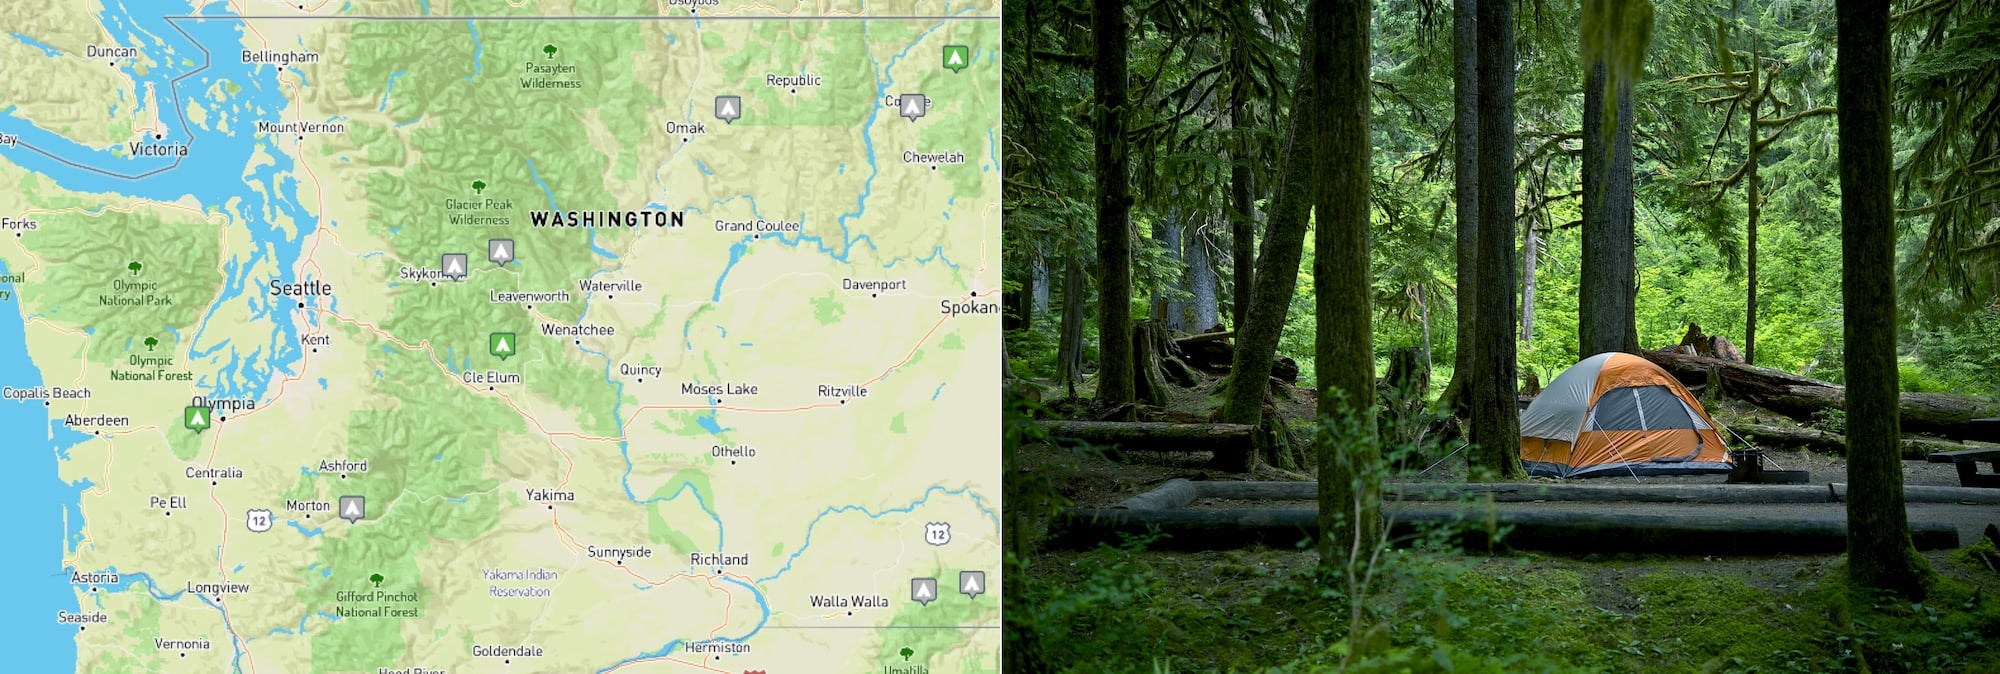 10 Free Washington Campgrounds, From the Mountains to the Coast